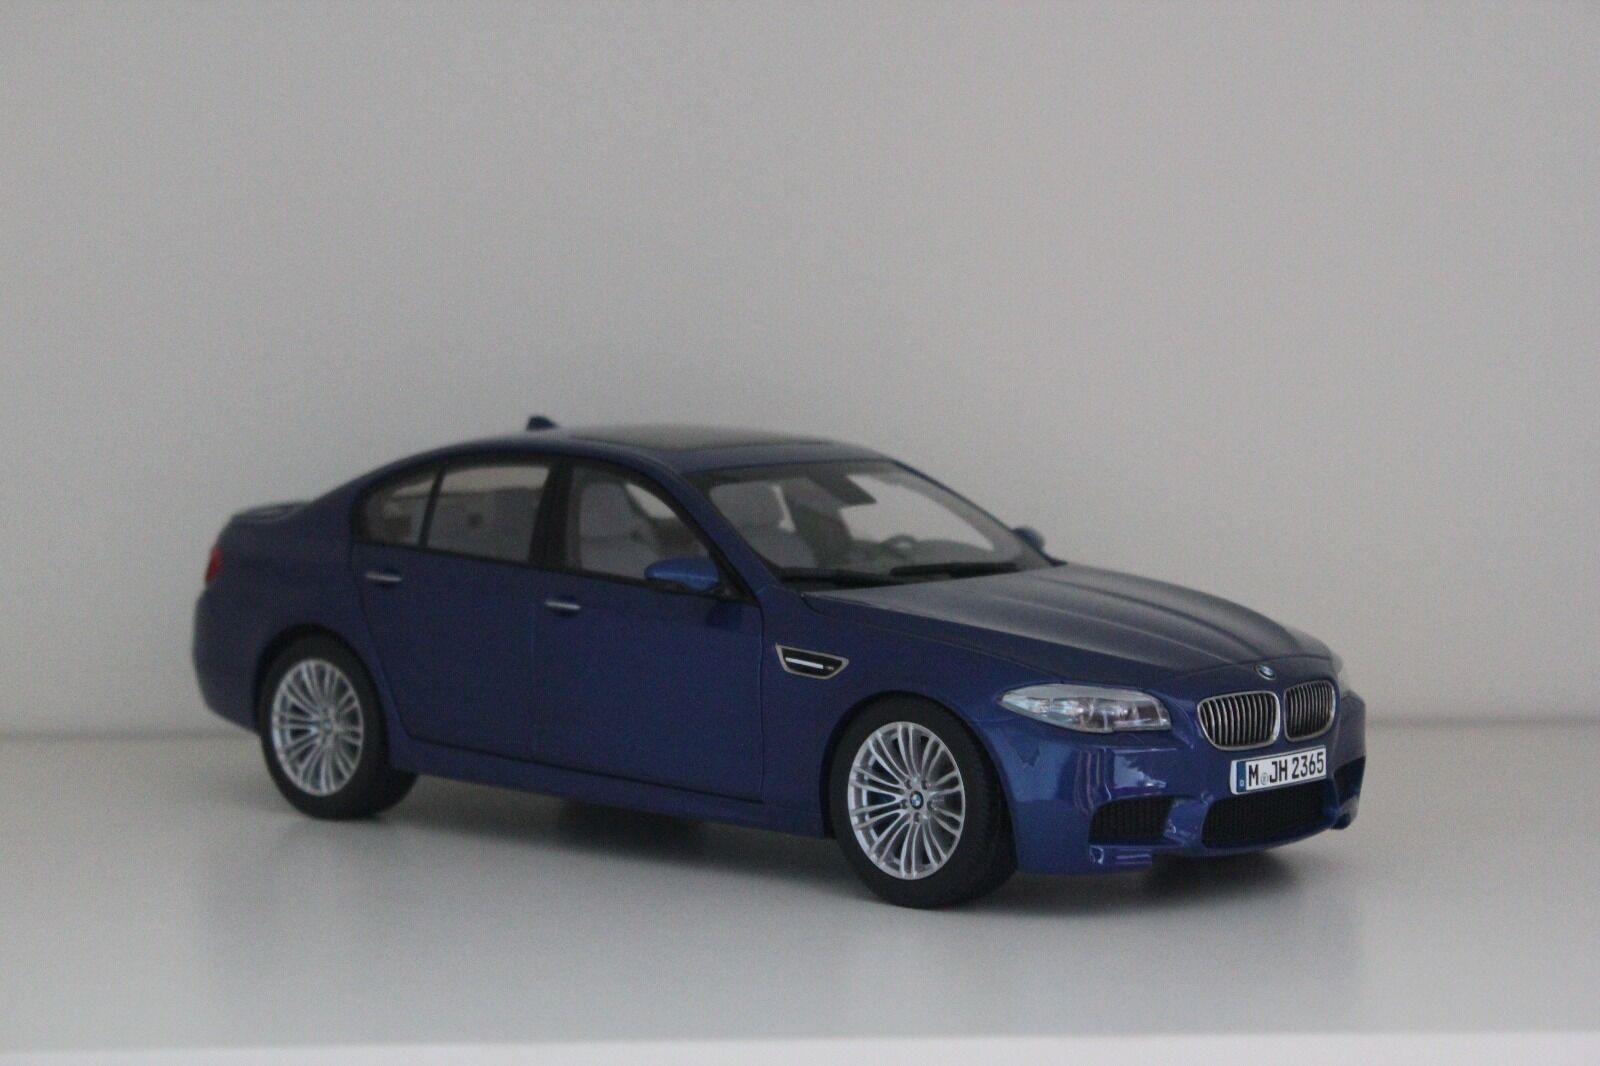 Paragon Bmw M5 F10 Monte Carlo blu 80432186352 1 18 Dealer Edition